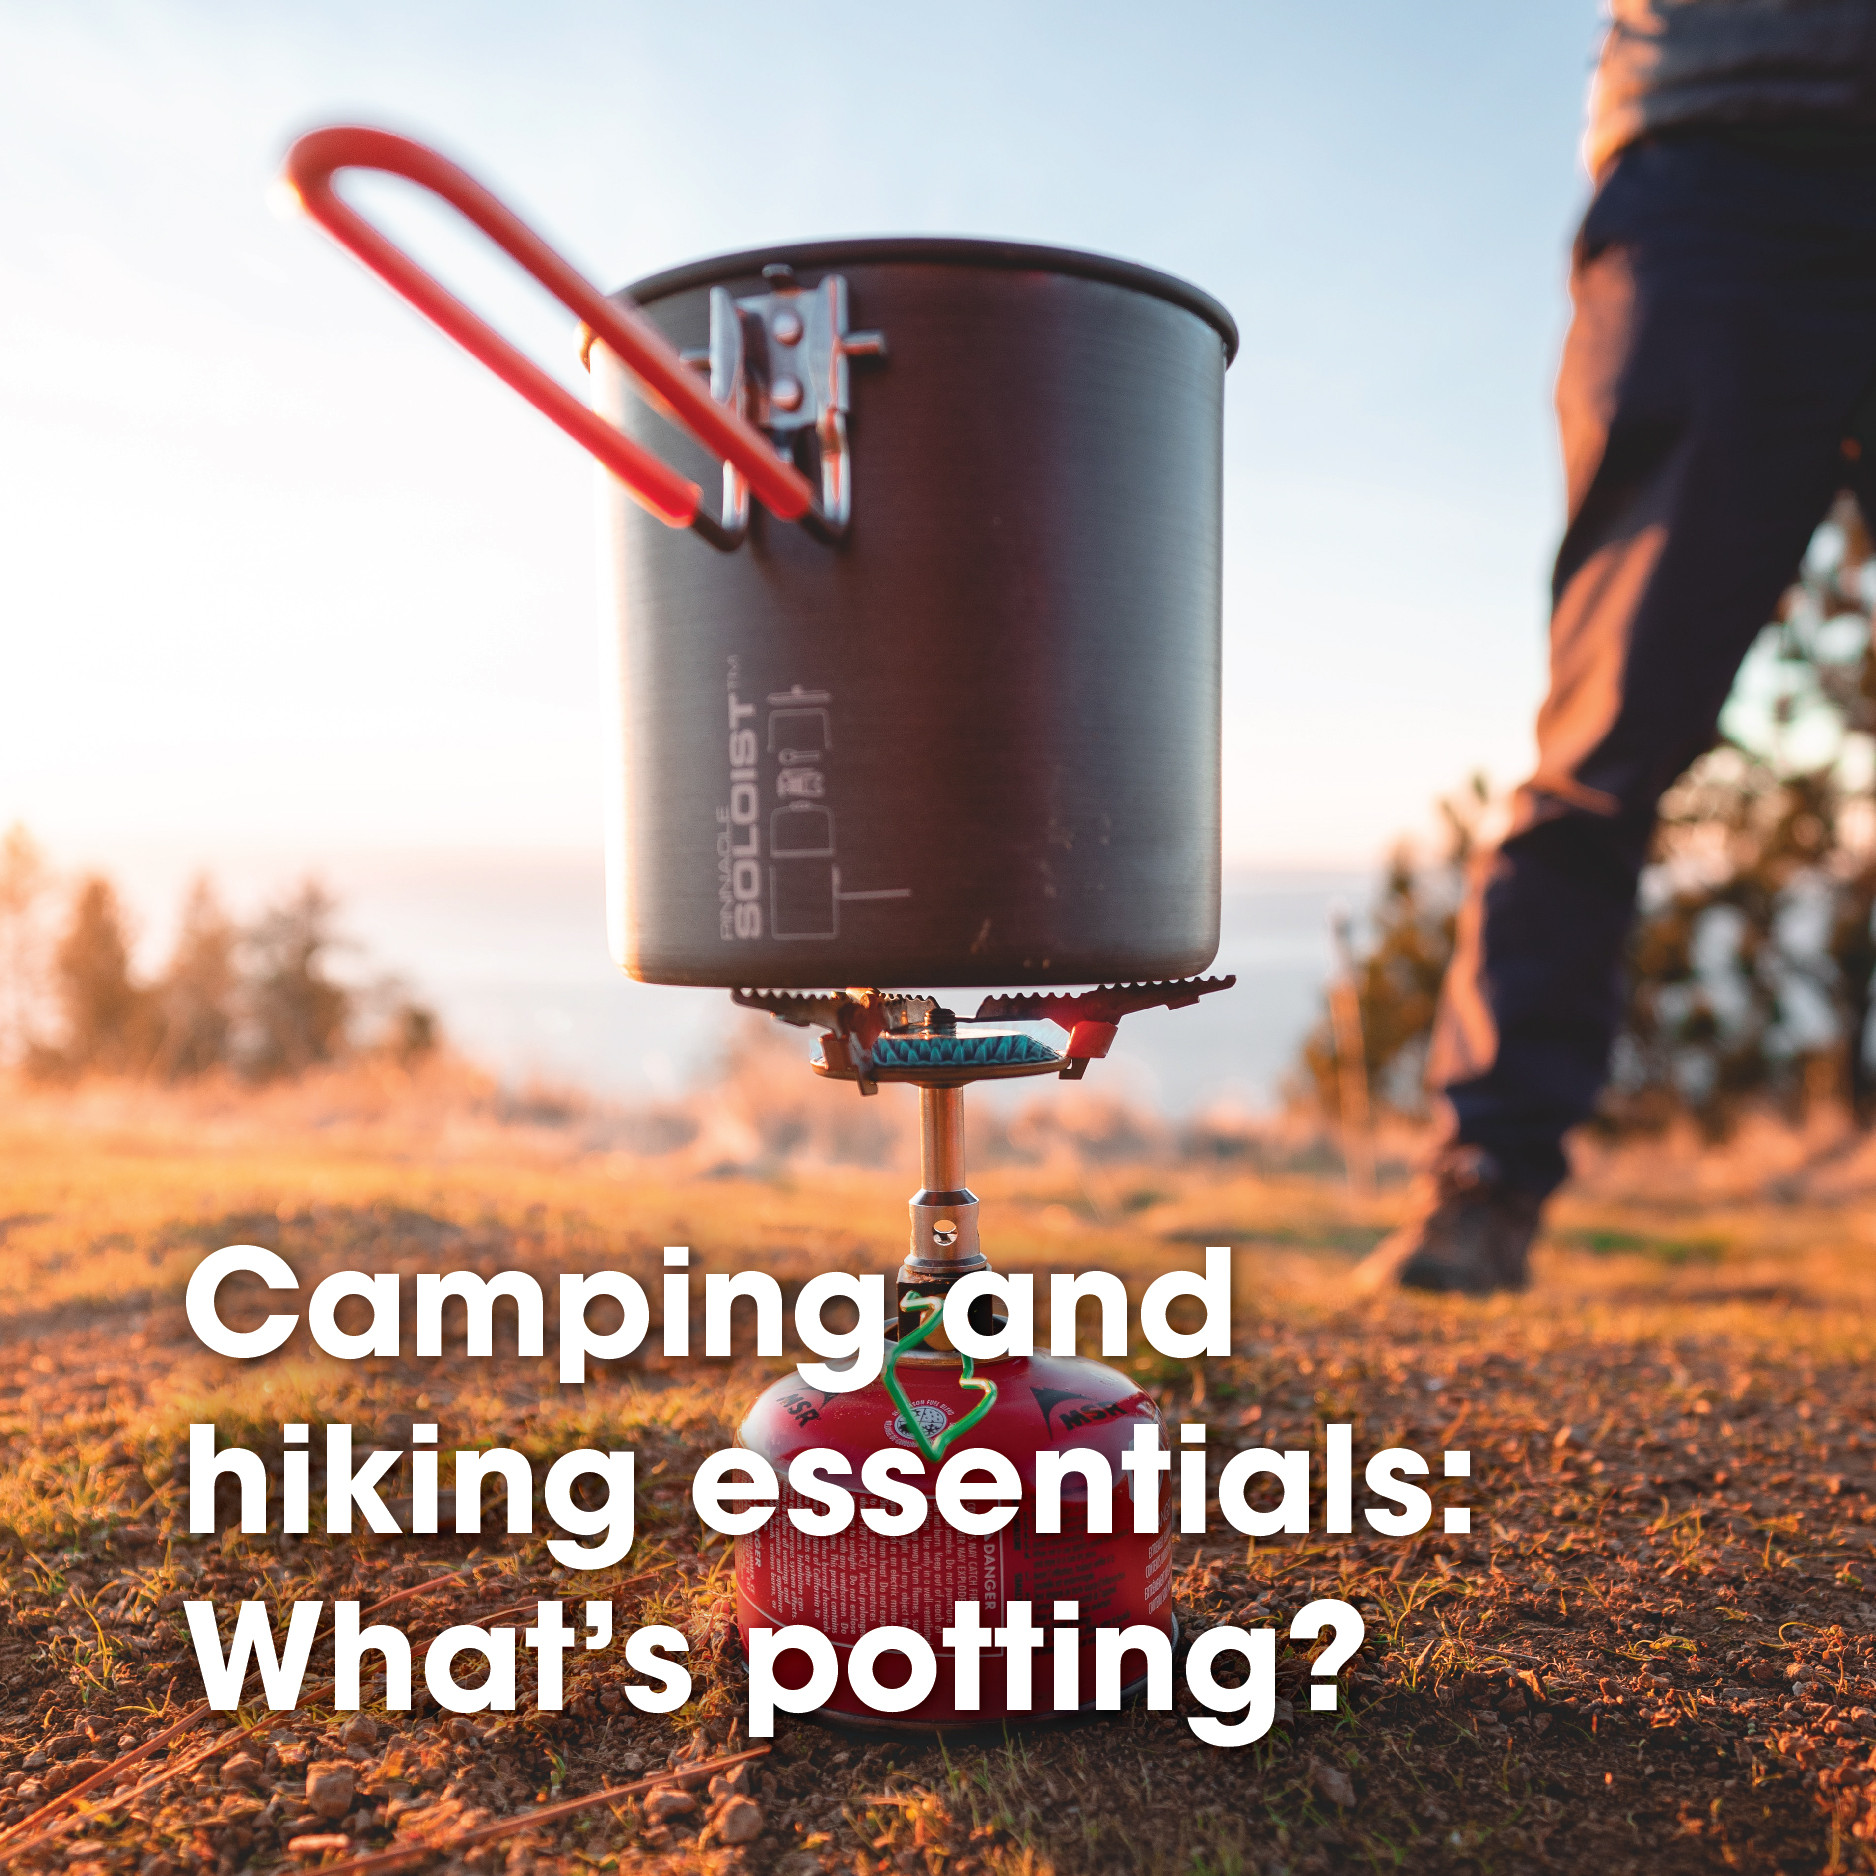 Camping and hiking essentials: What's potting?